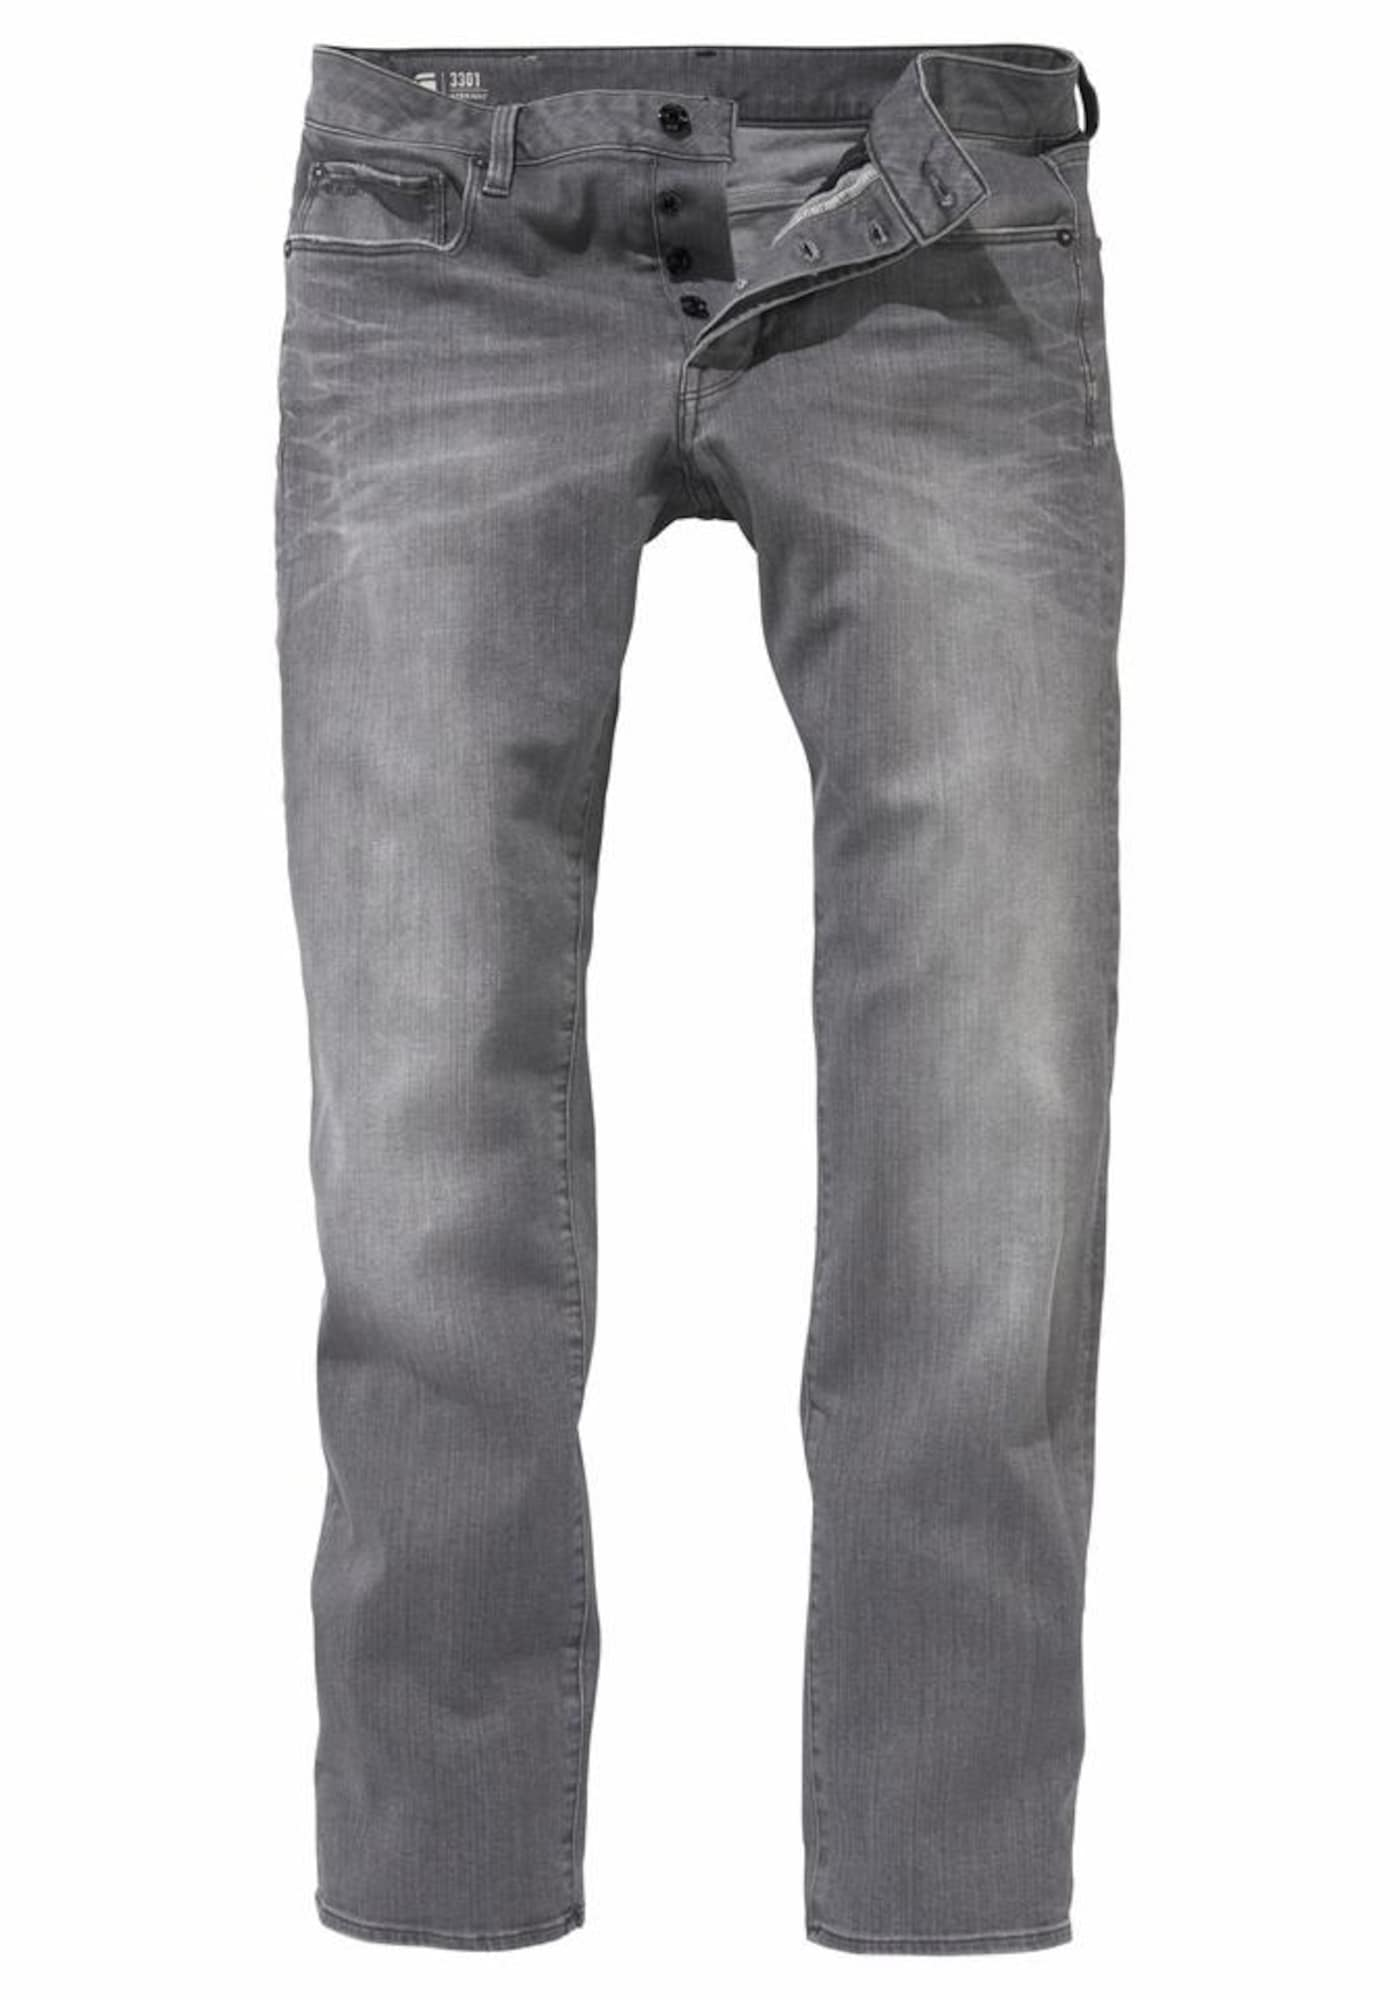 G-STAR RAW Heren Jeans 3301 Straight grijs